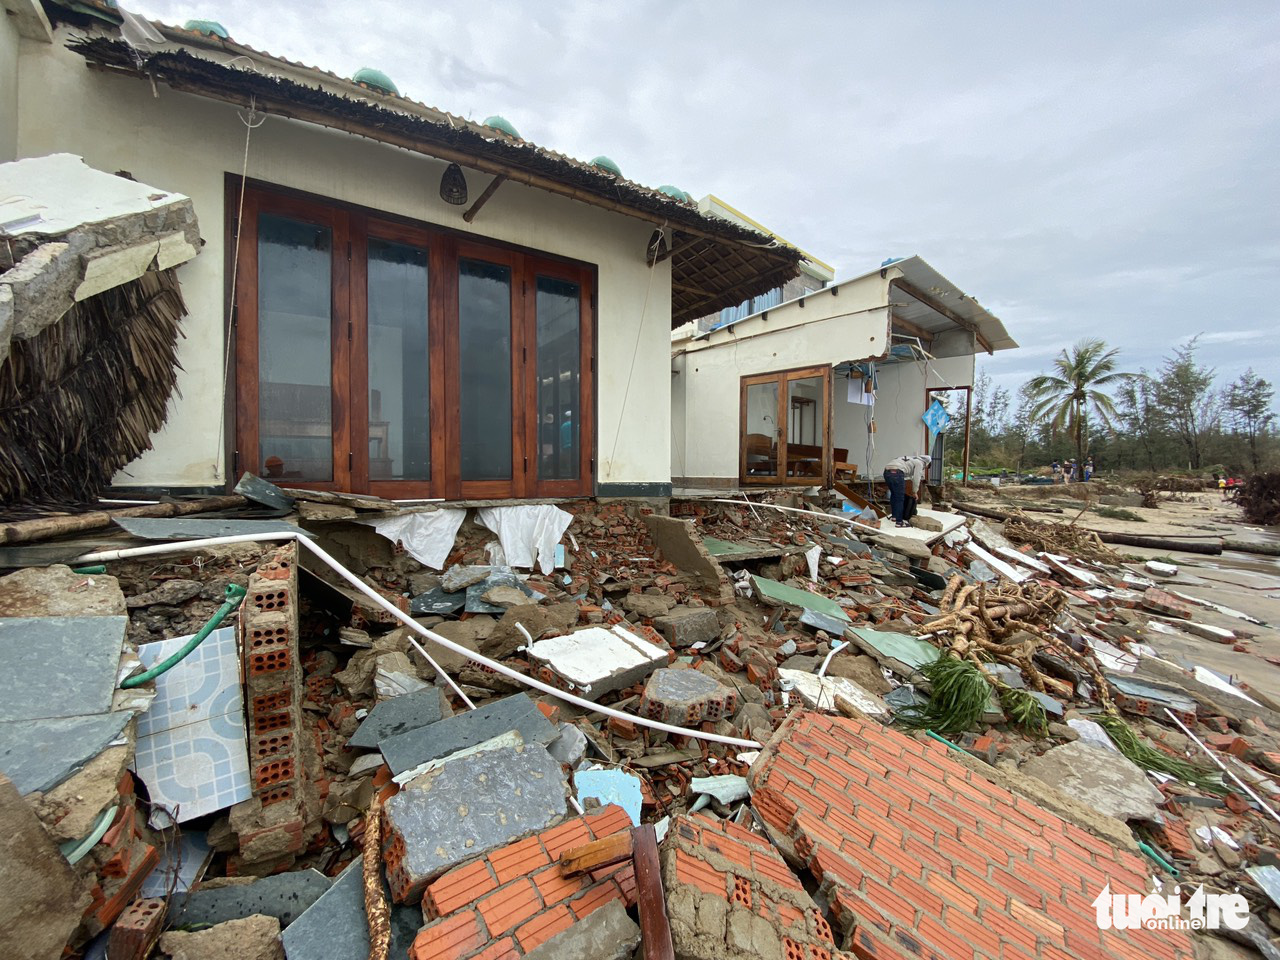 Houses are damaged by strong waves at a coastal area in Quang Nam Province, Vietnam, November 15, 2020. Photo: Le Trung / Tuoi Tre